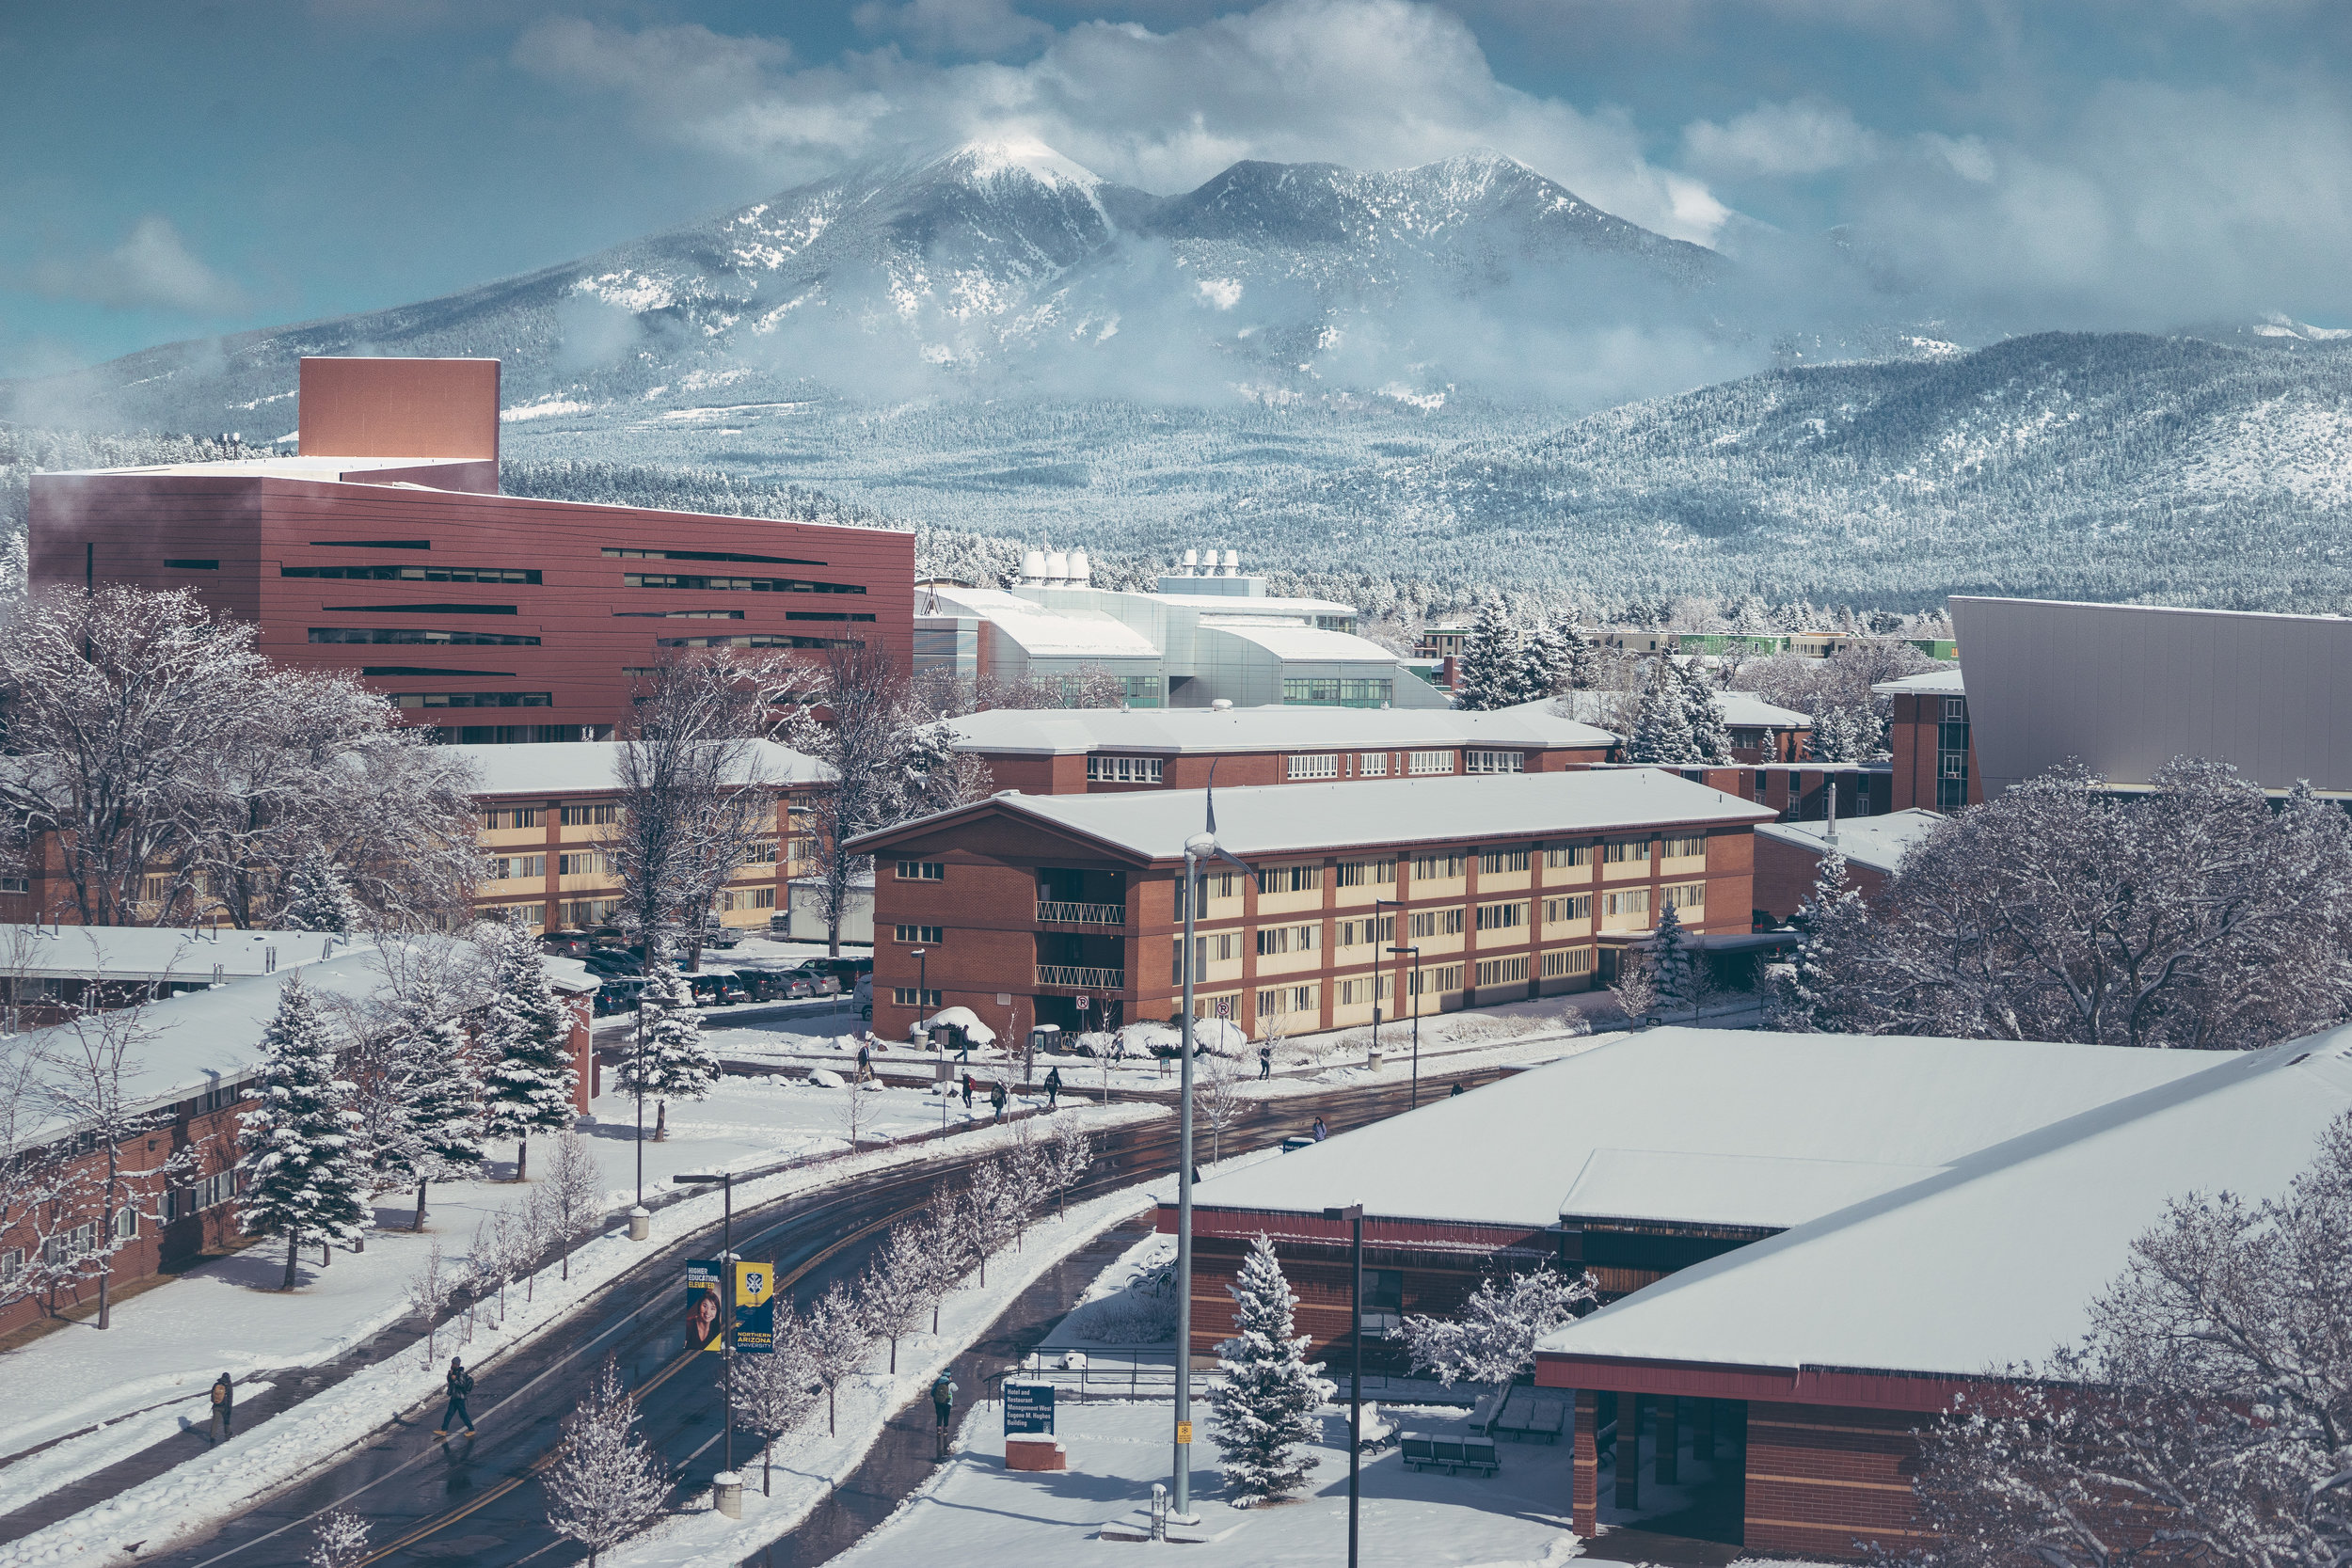 Snowy San Francisco Mountain looms large from the Campus of Northern Arizona University